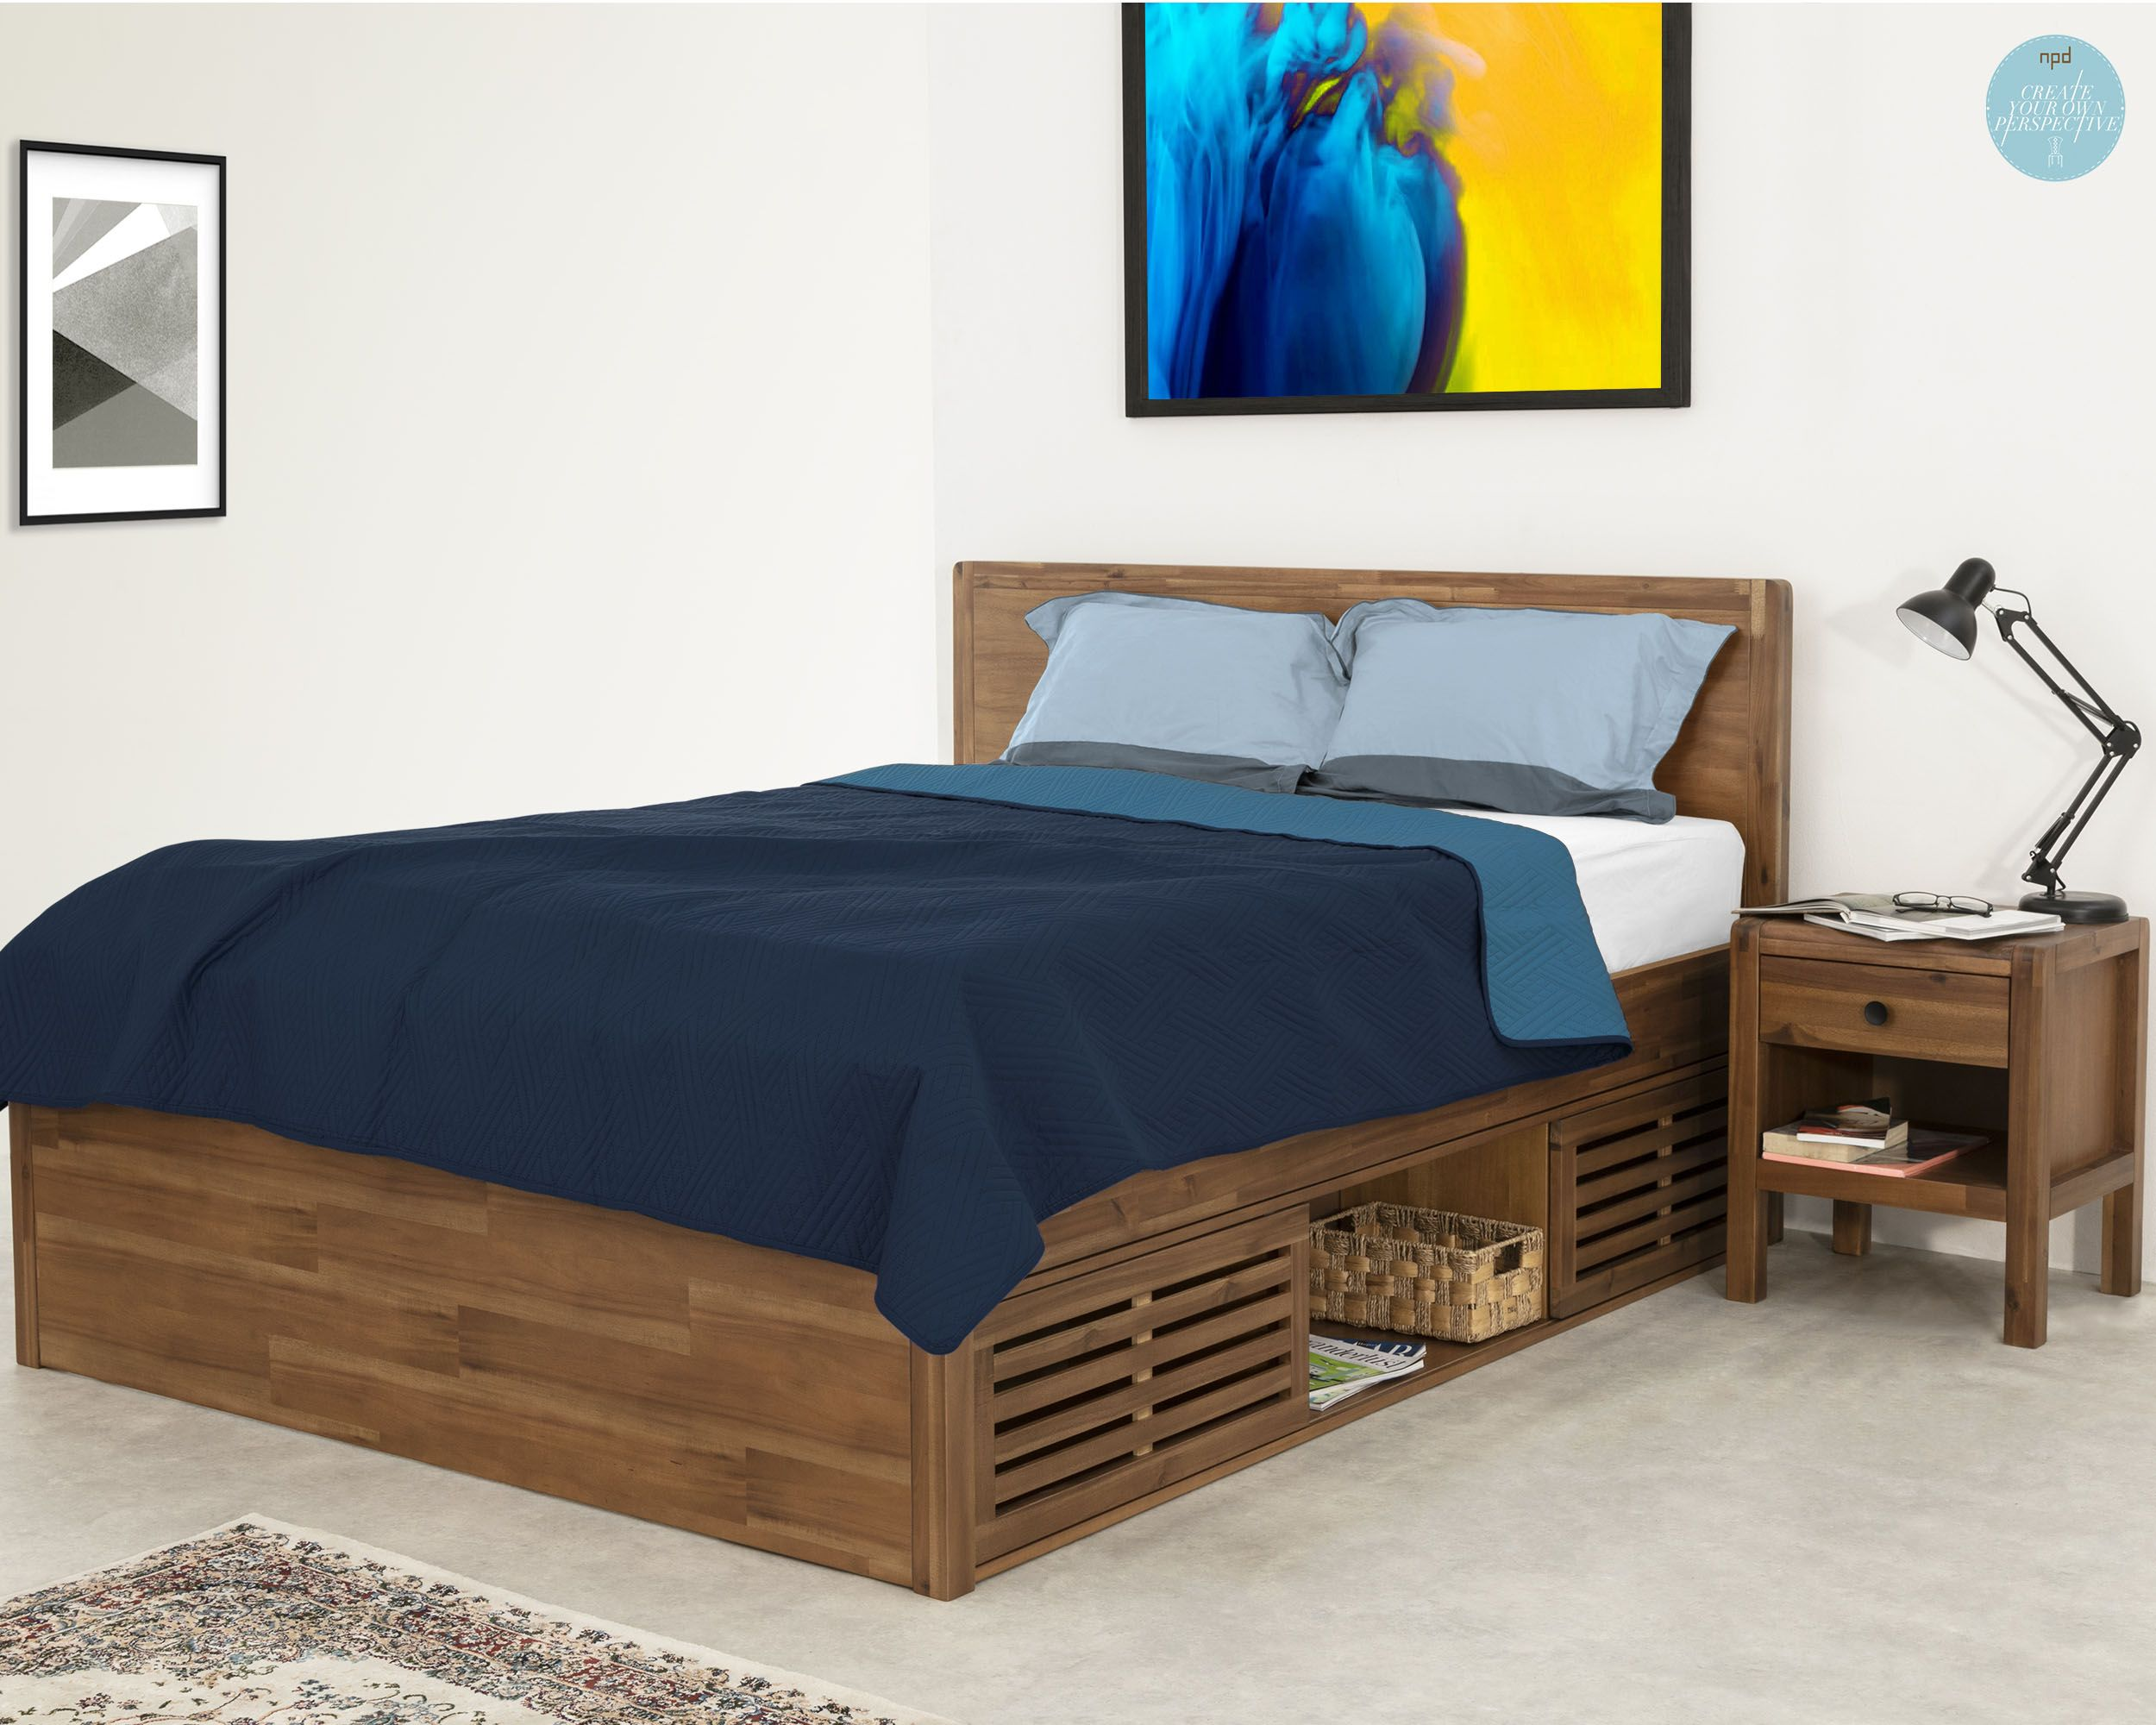 Stay In Bed Friday Modular Bed Set A Rounded Bullnose Frame